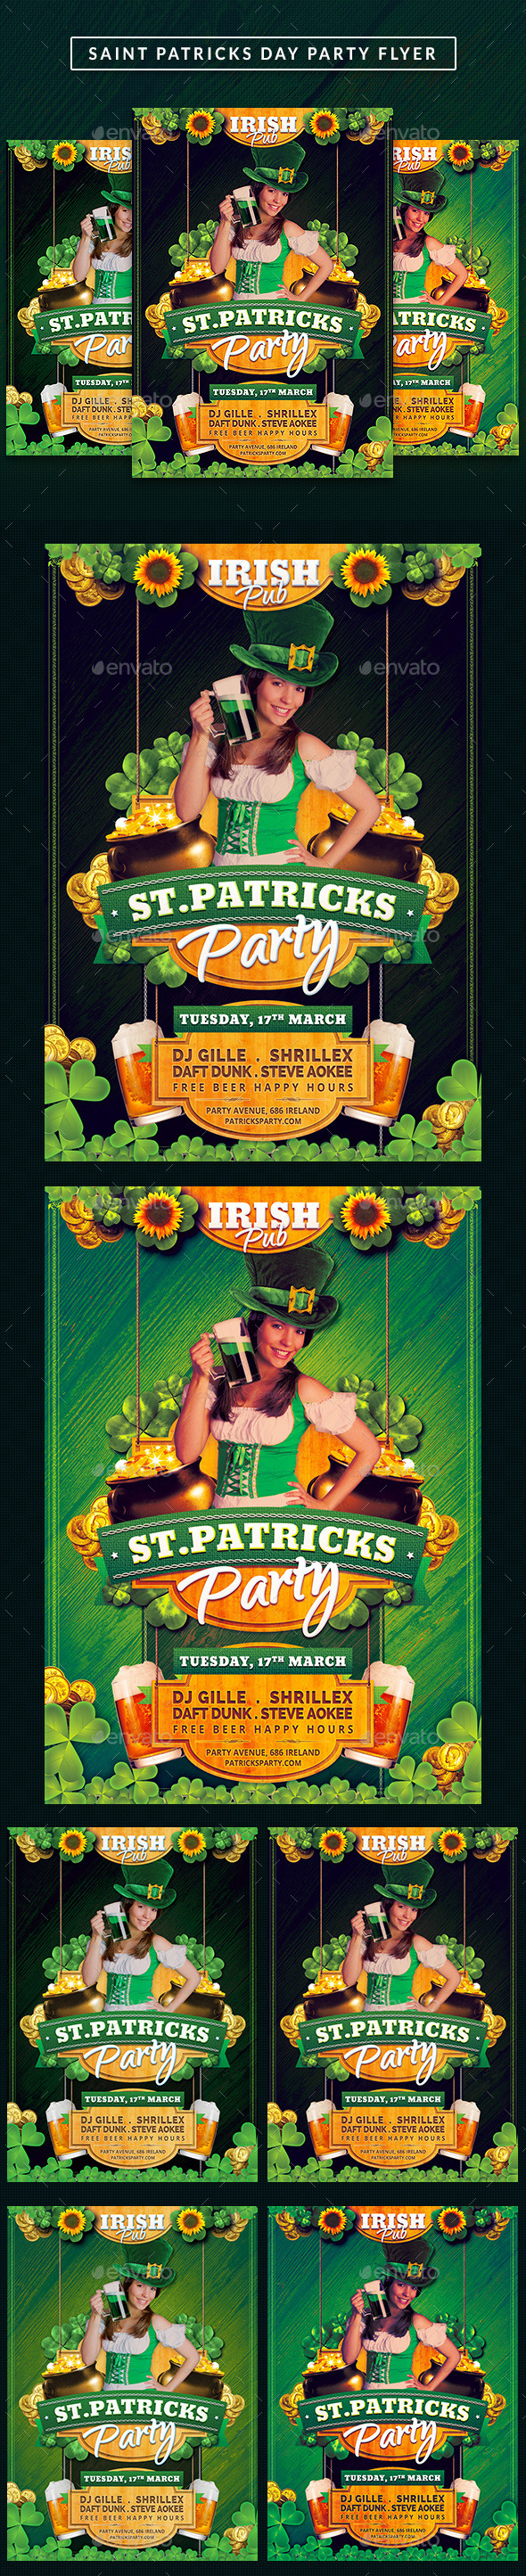 Saint Patricks Celebration Day Flyer - Clubs & Parties Events